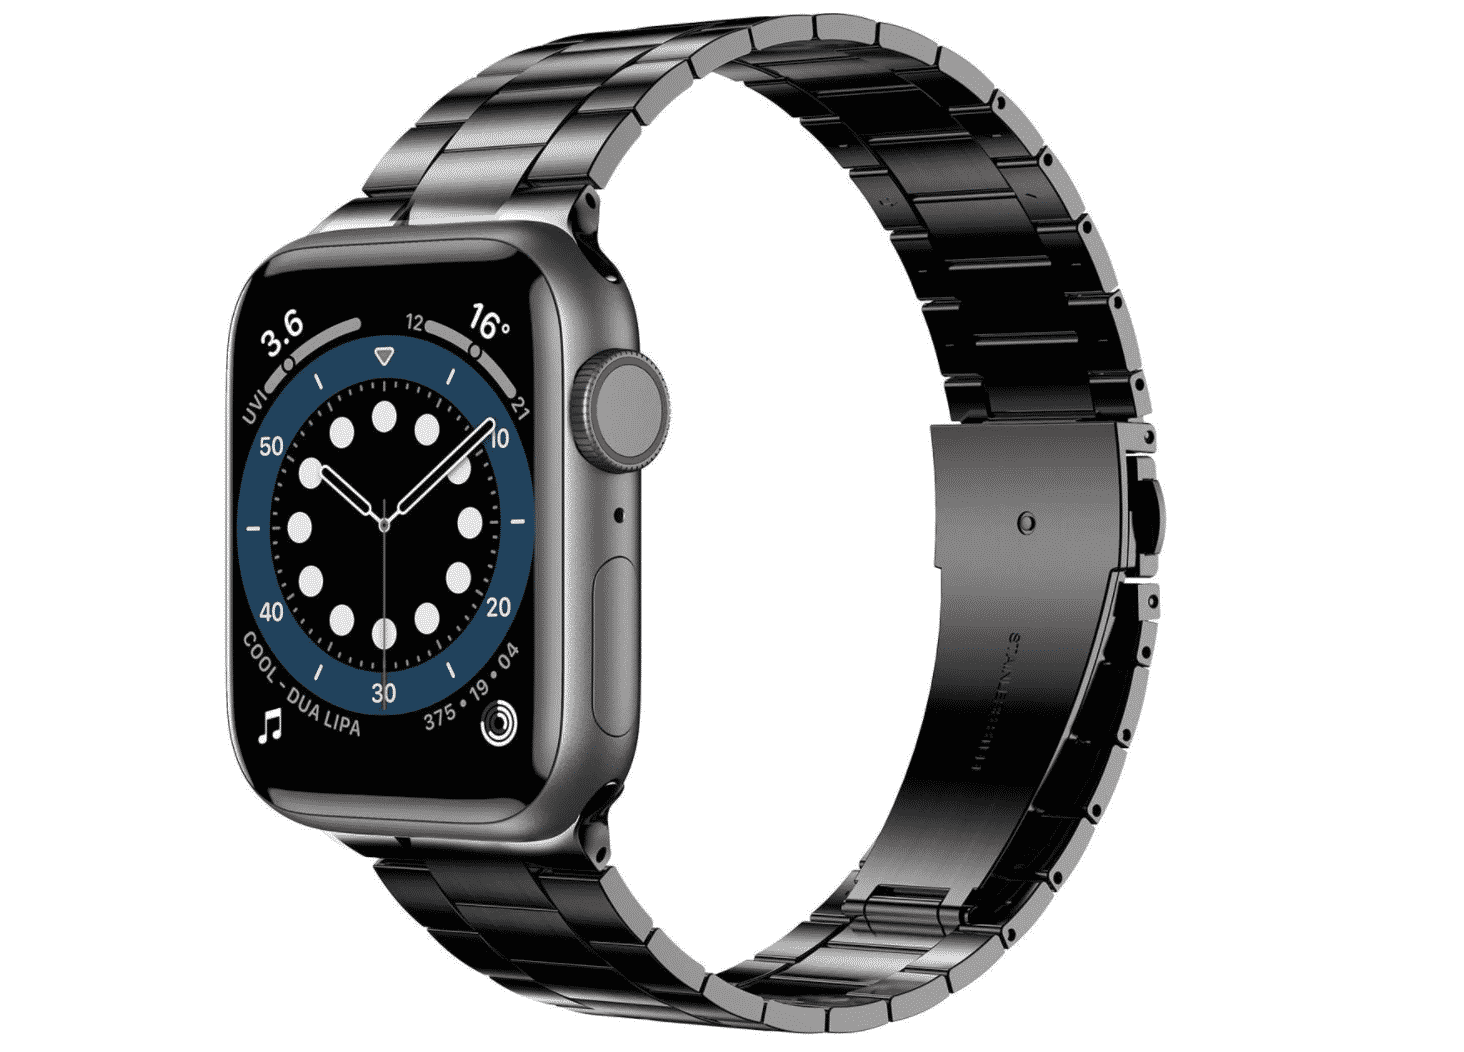 Anwaut Stainless Steel Wristband for Your Apple Watch